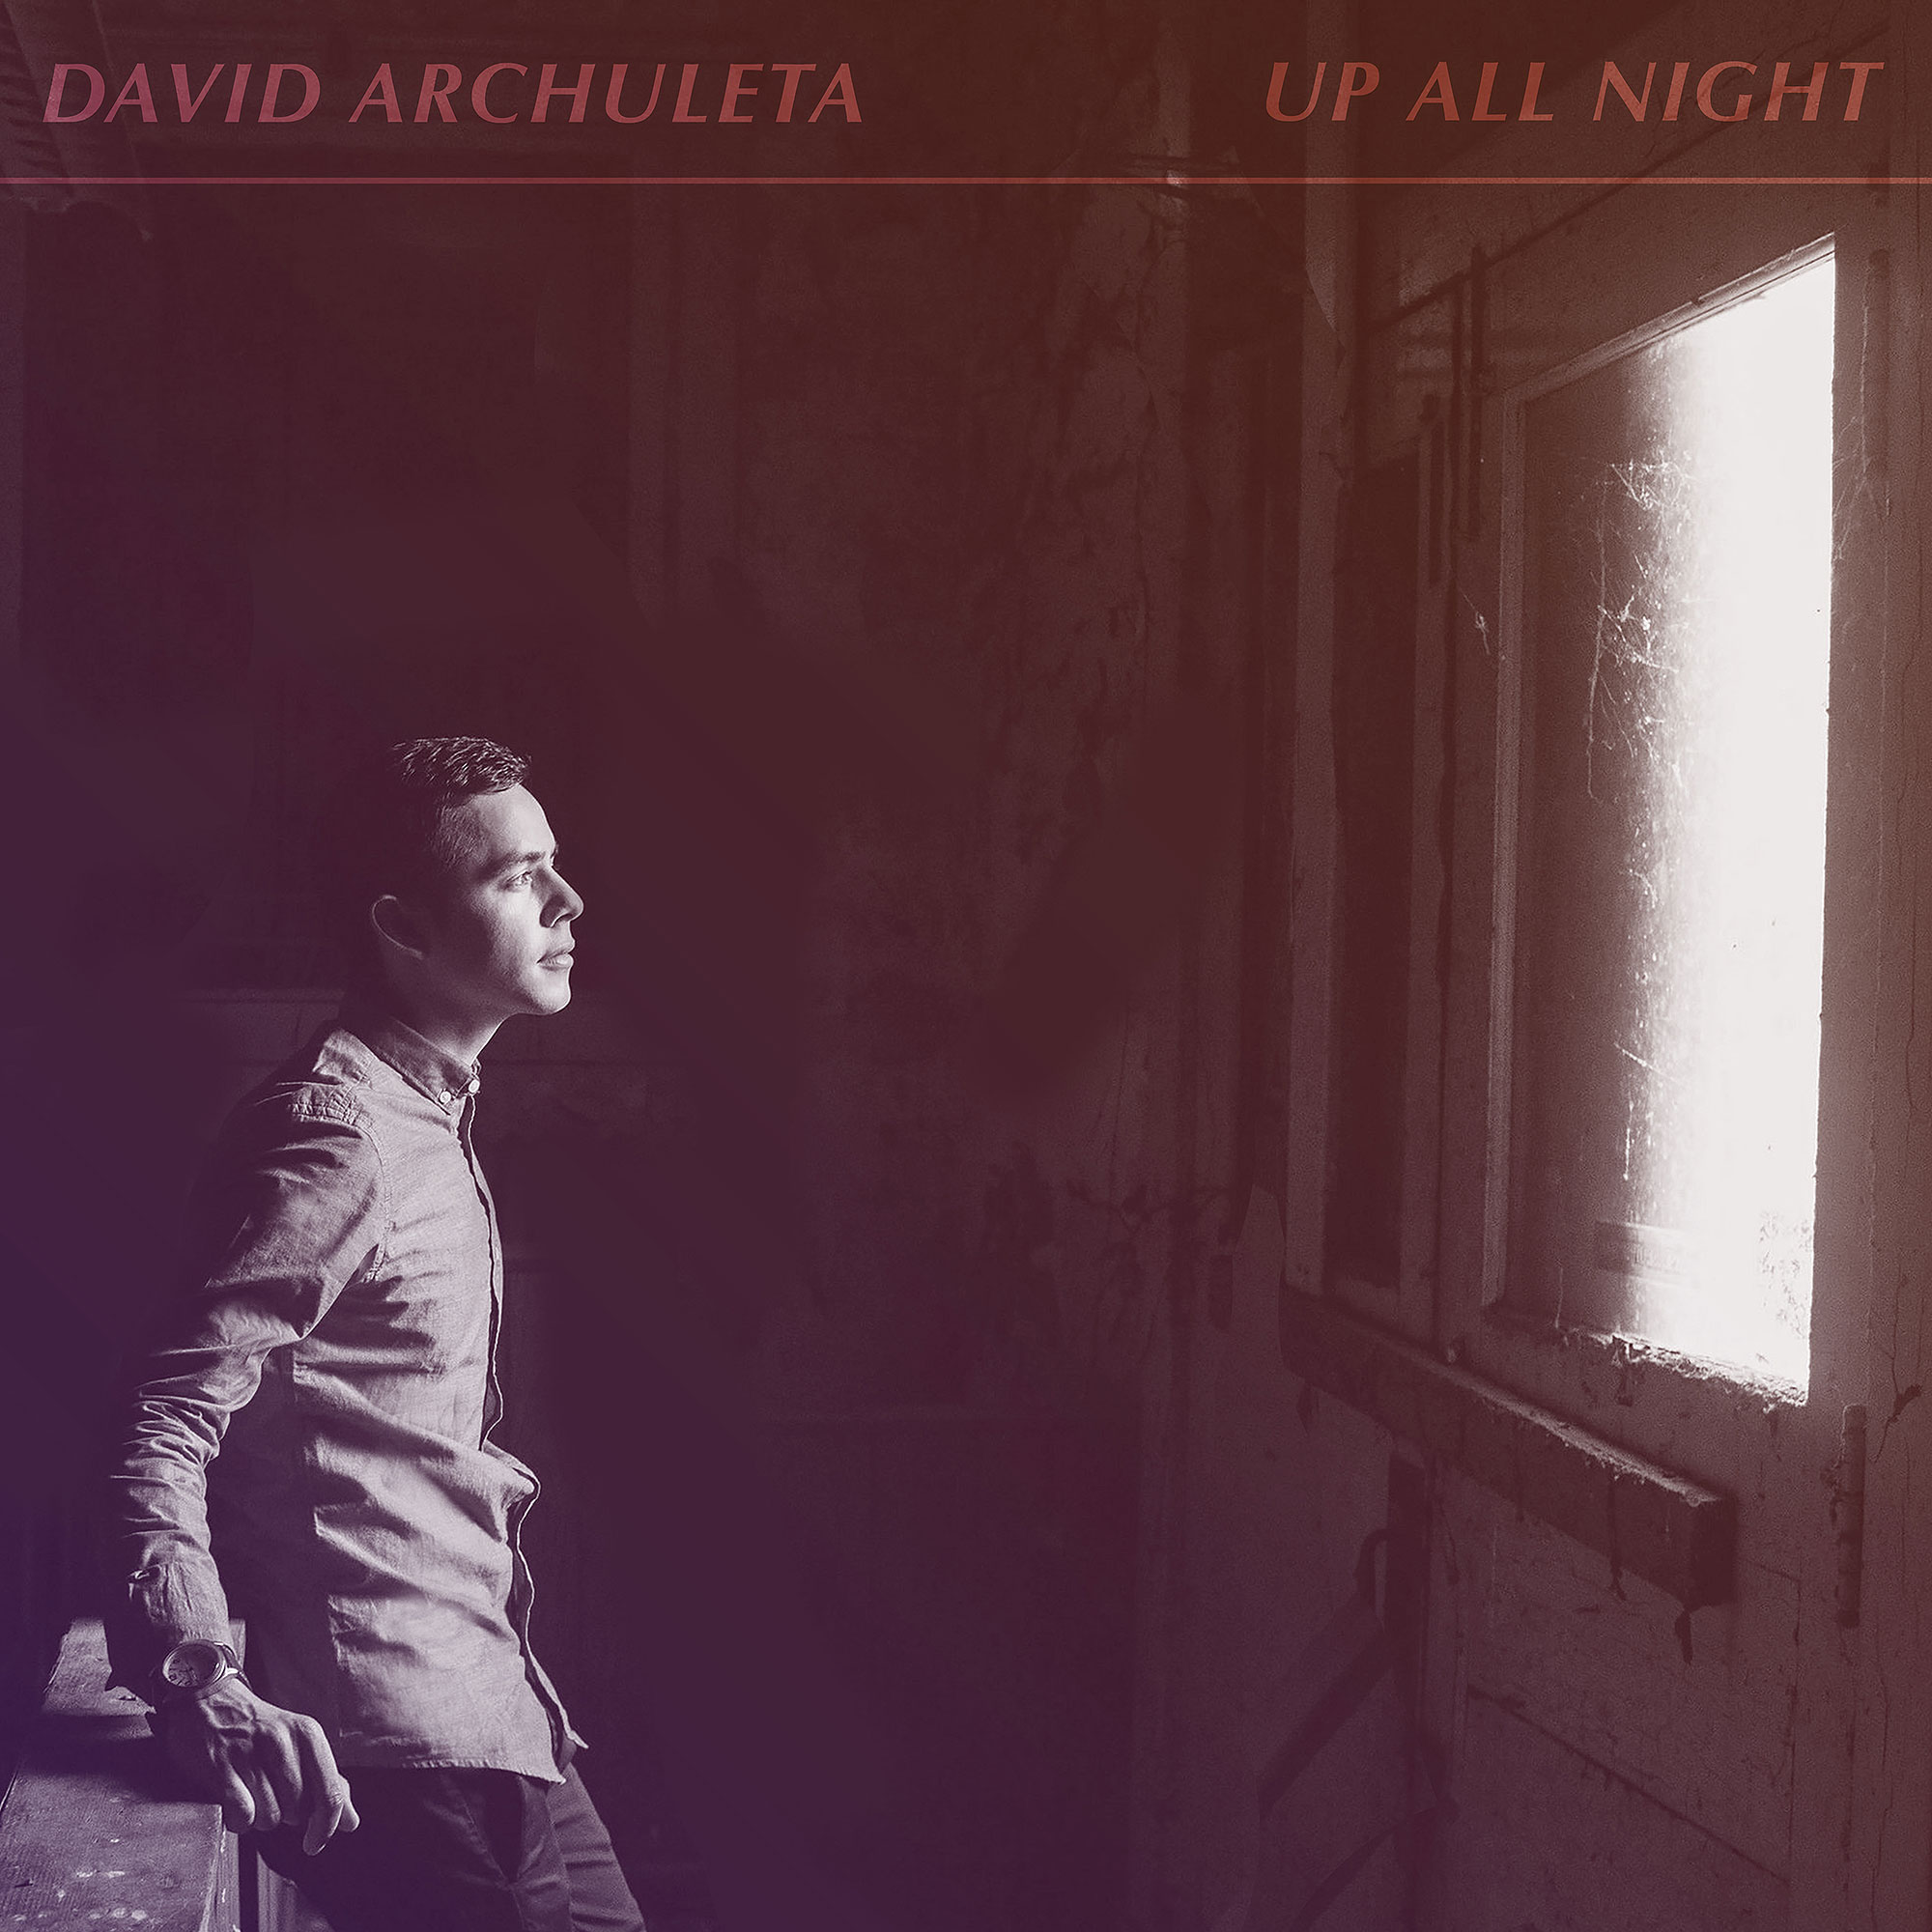 David Archuleta Up All Night